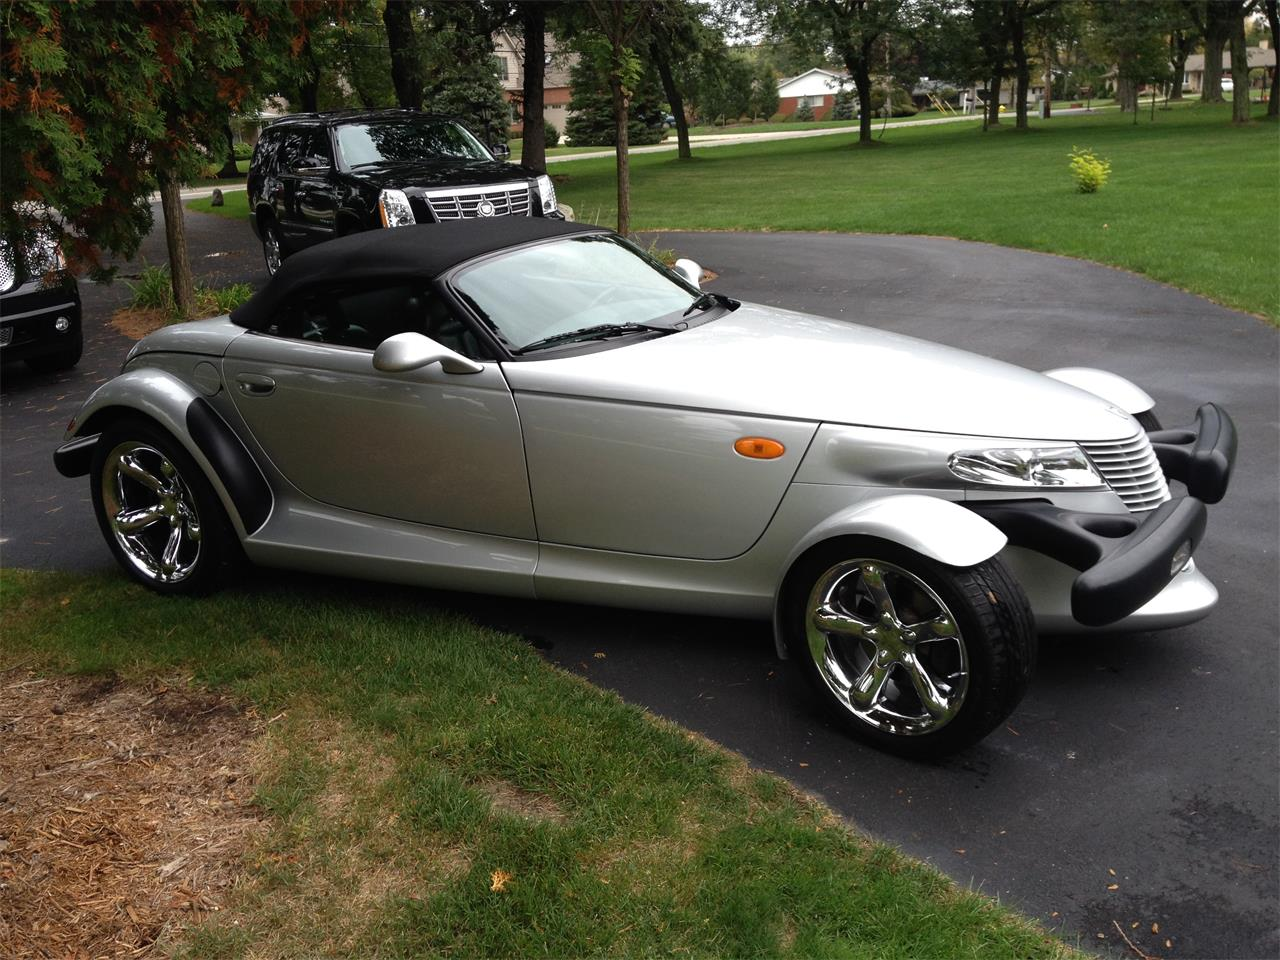 Large Picture of 2000 Plymouth Prowler located in Michigan Offered by a Private Seller - F0A7